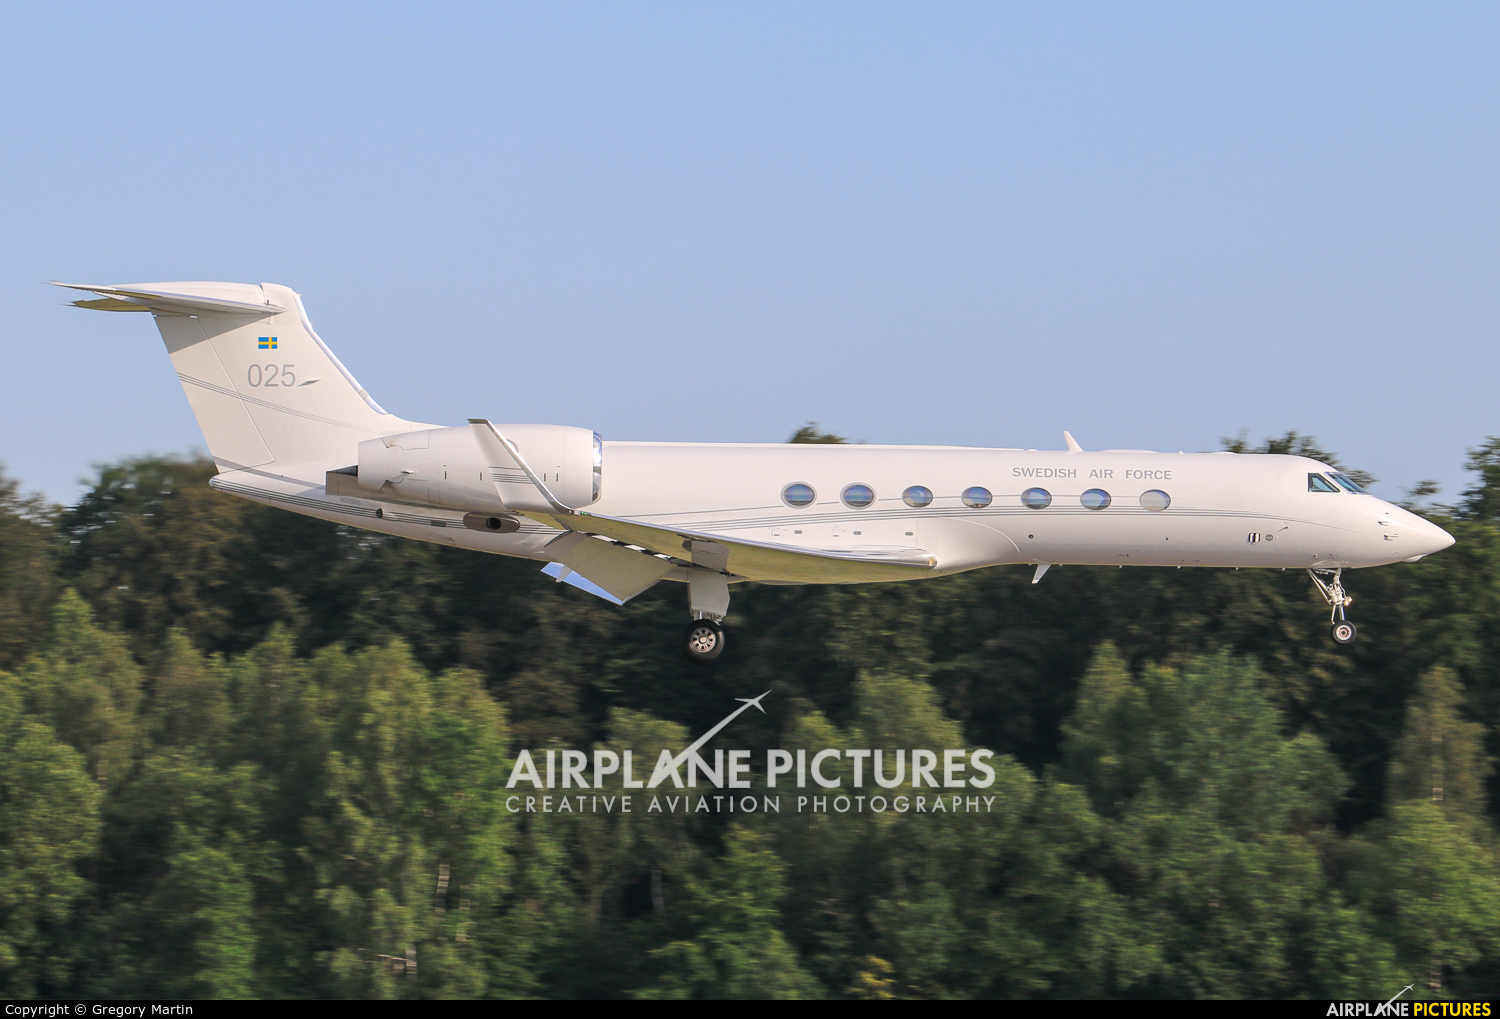 Sweden - Air Force 025 aircraft at Luxembourg - Findel